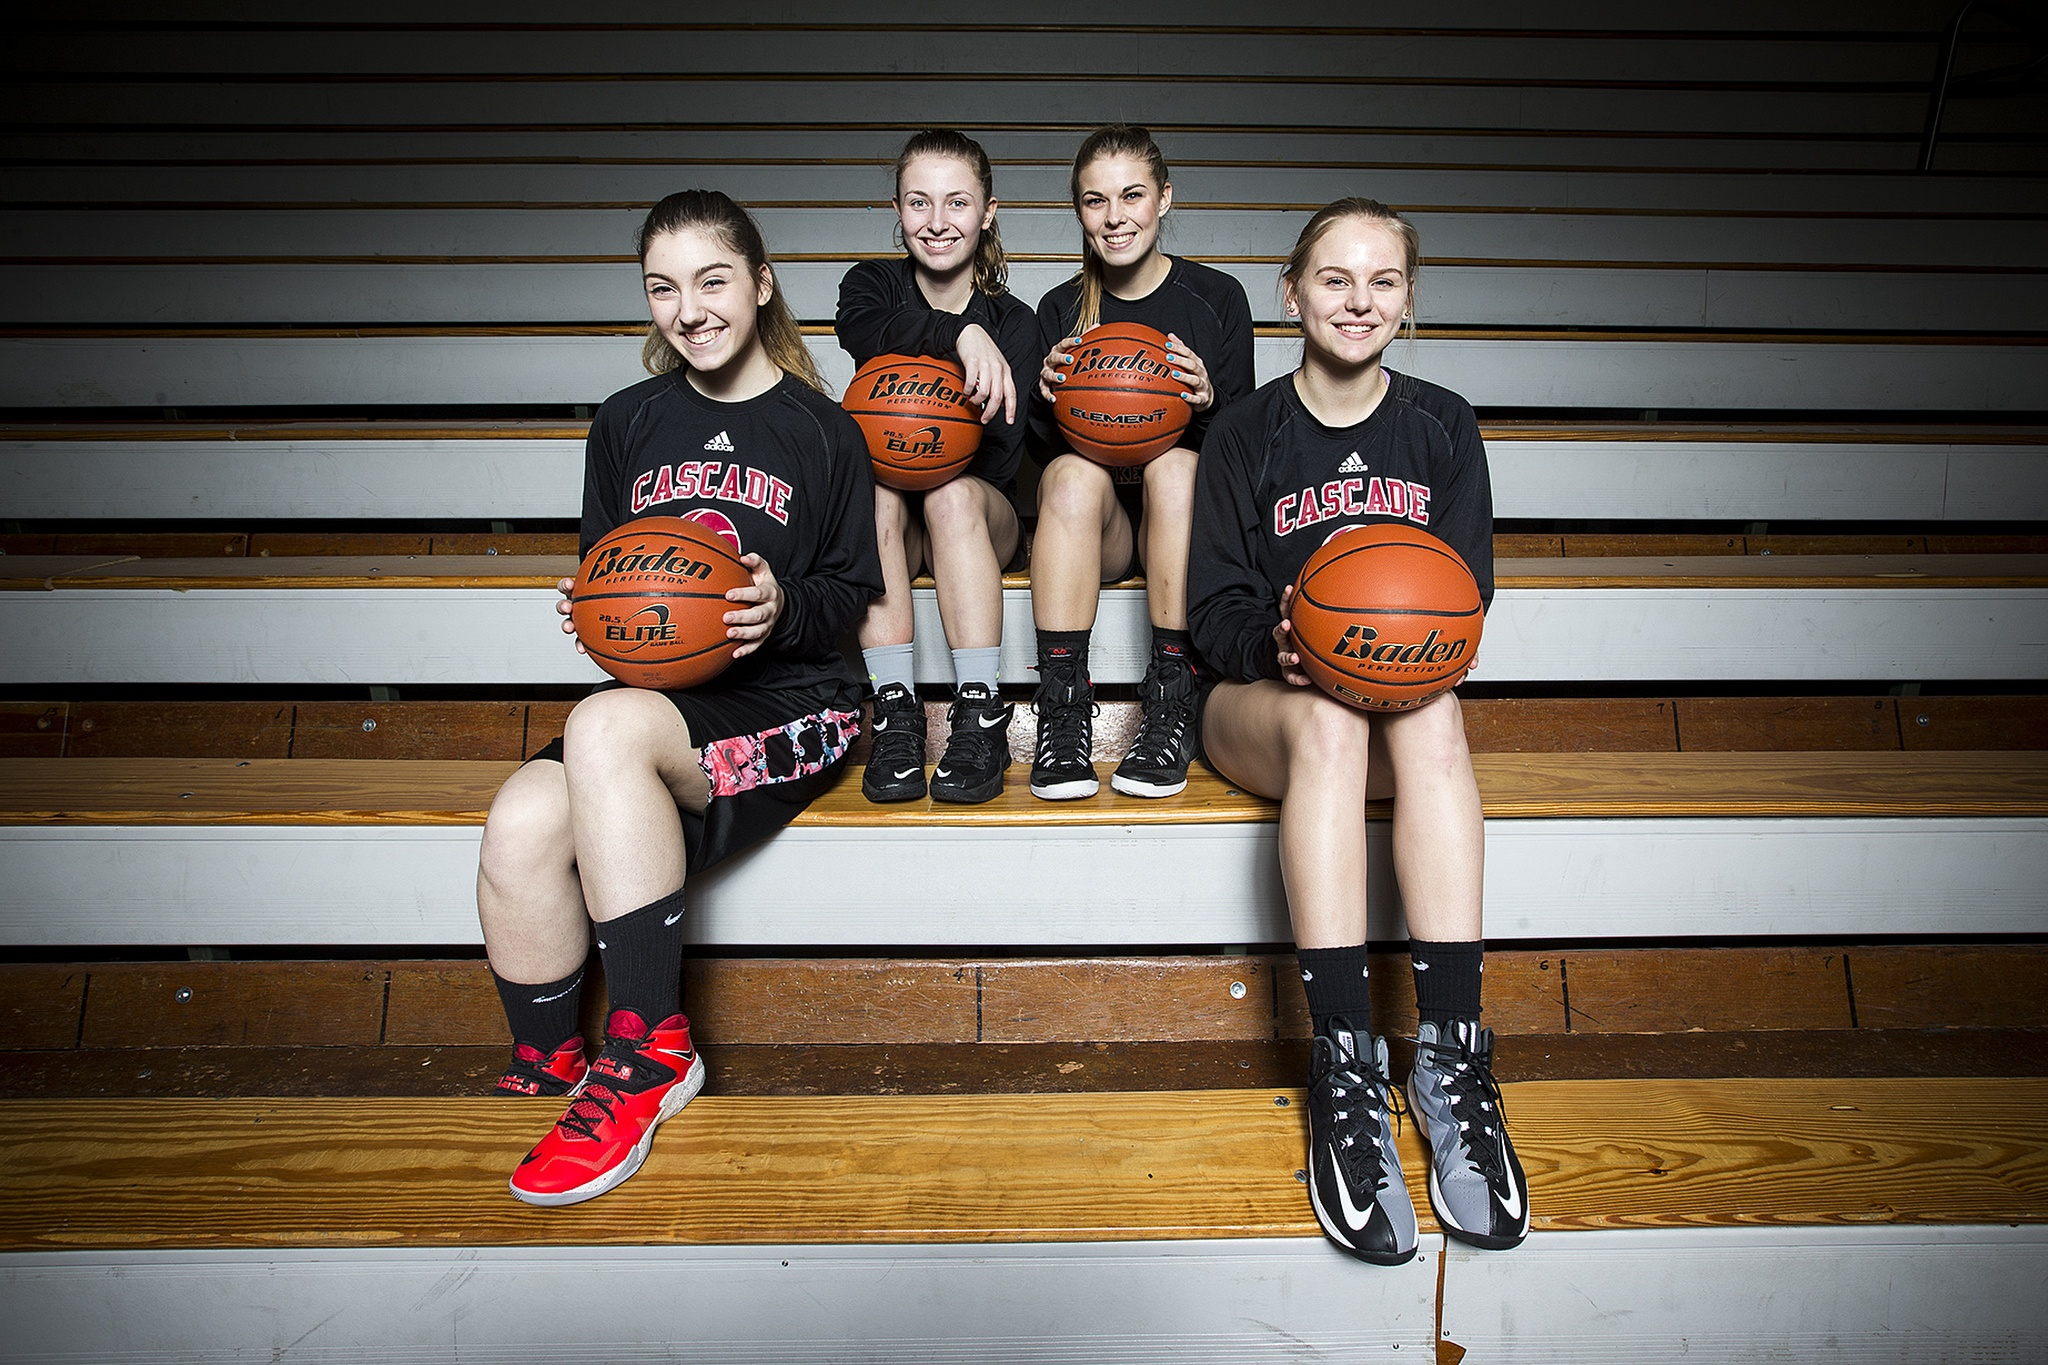 Cascade seniors (from left) Megan Thomas, Anneka Hilde, Jessica Welch and Lexi Strike helped snap their team's 41-game Wesco 4A losing streak. (Ian Terry / The Herald)